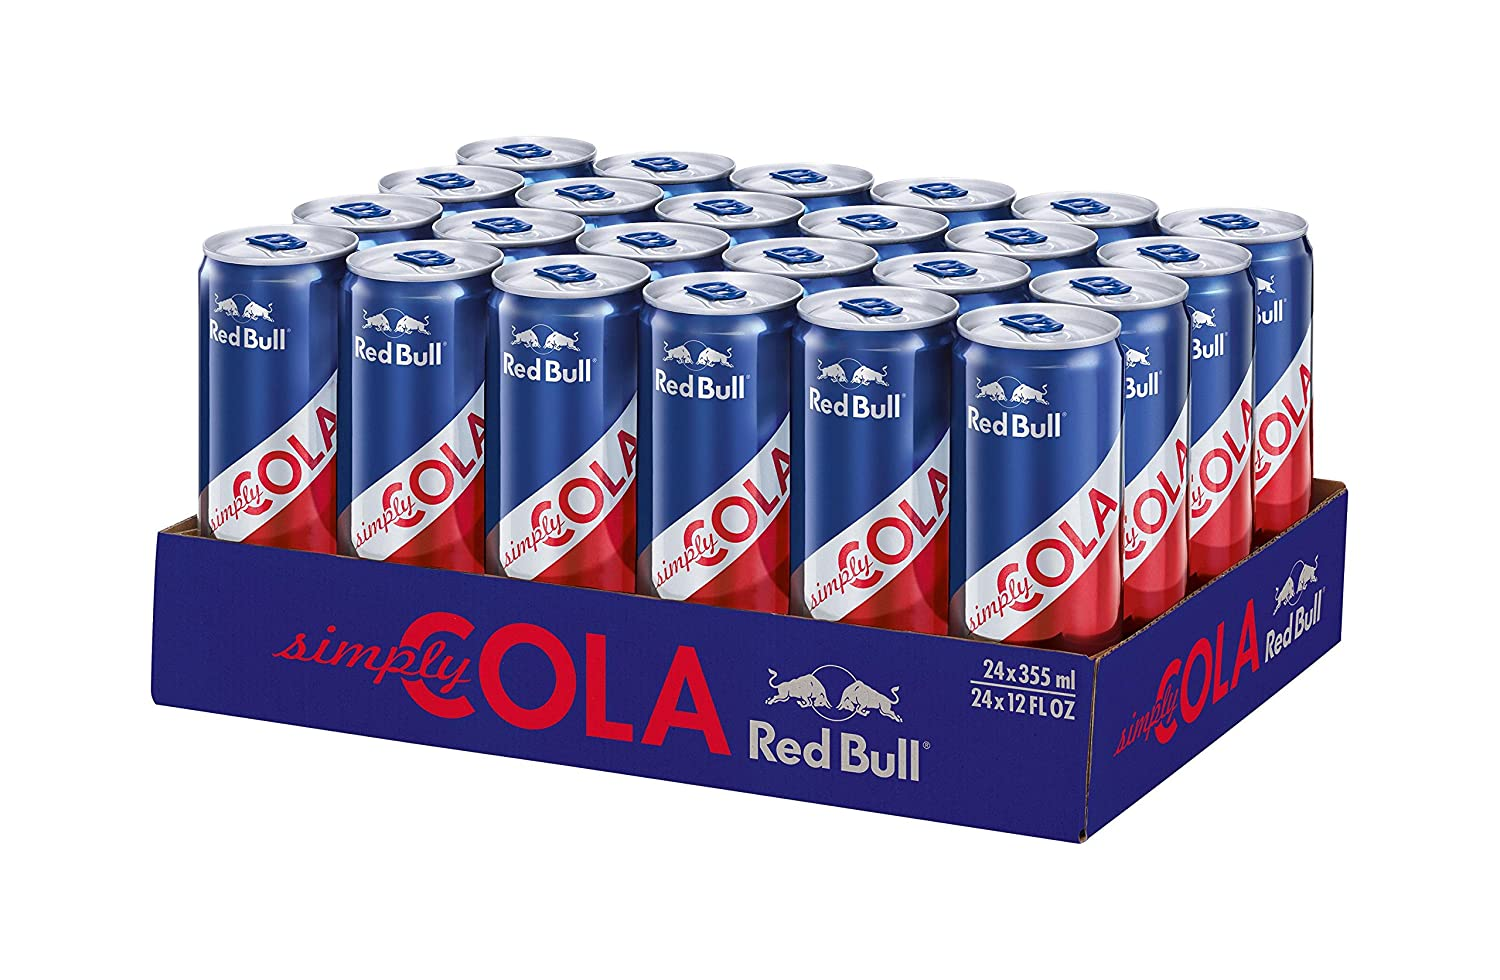 Red Bull Kühlschrank Xl : Red bull simply cola er pack ml amazon